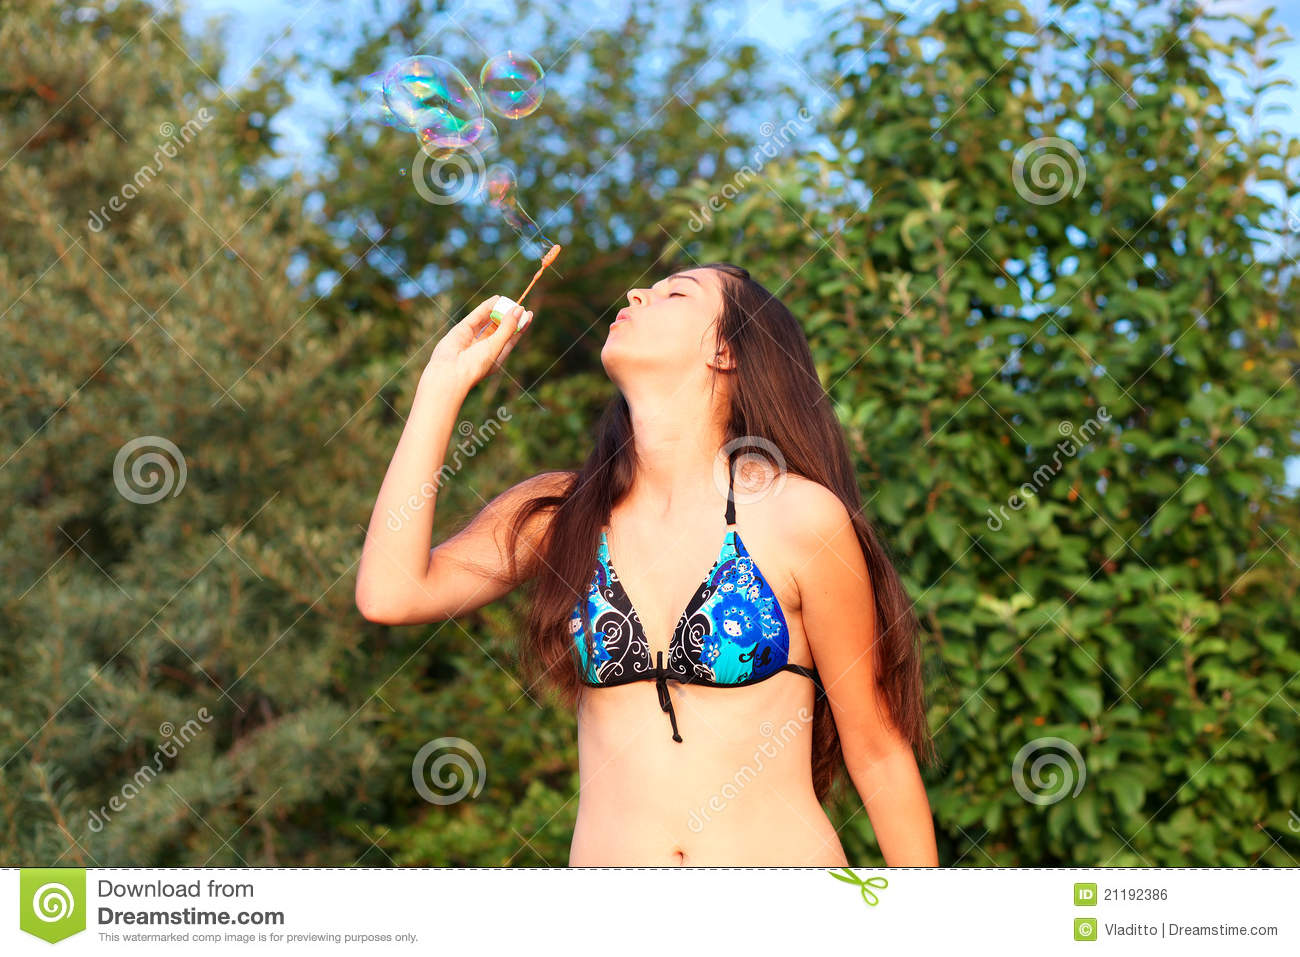 Pretty woman inflating soap bubbles